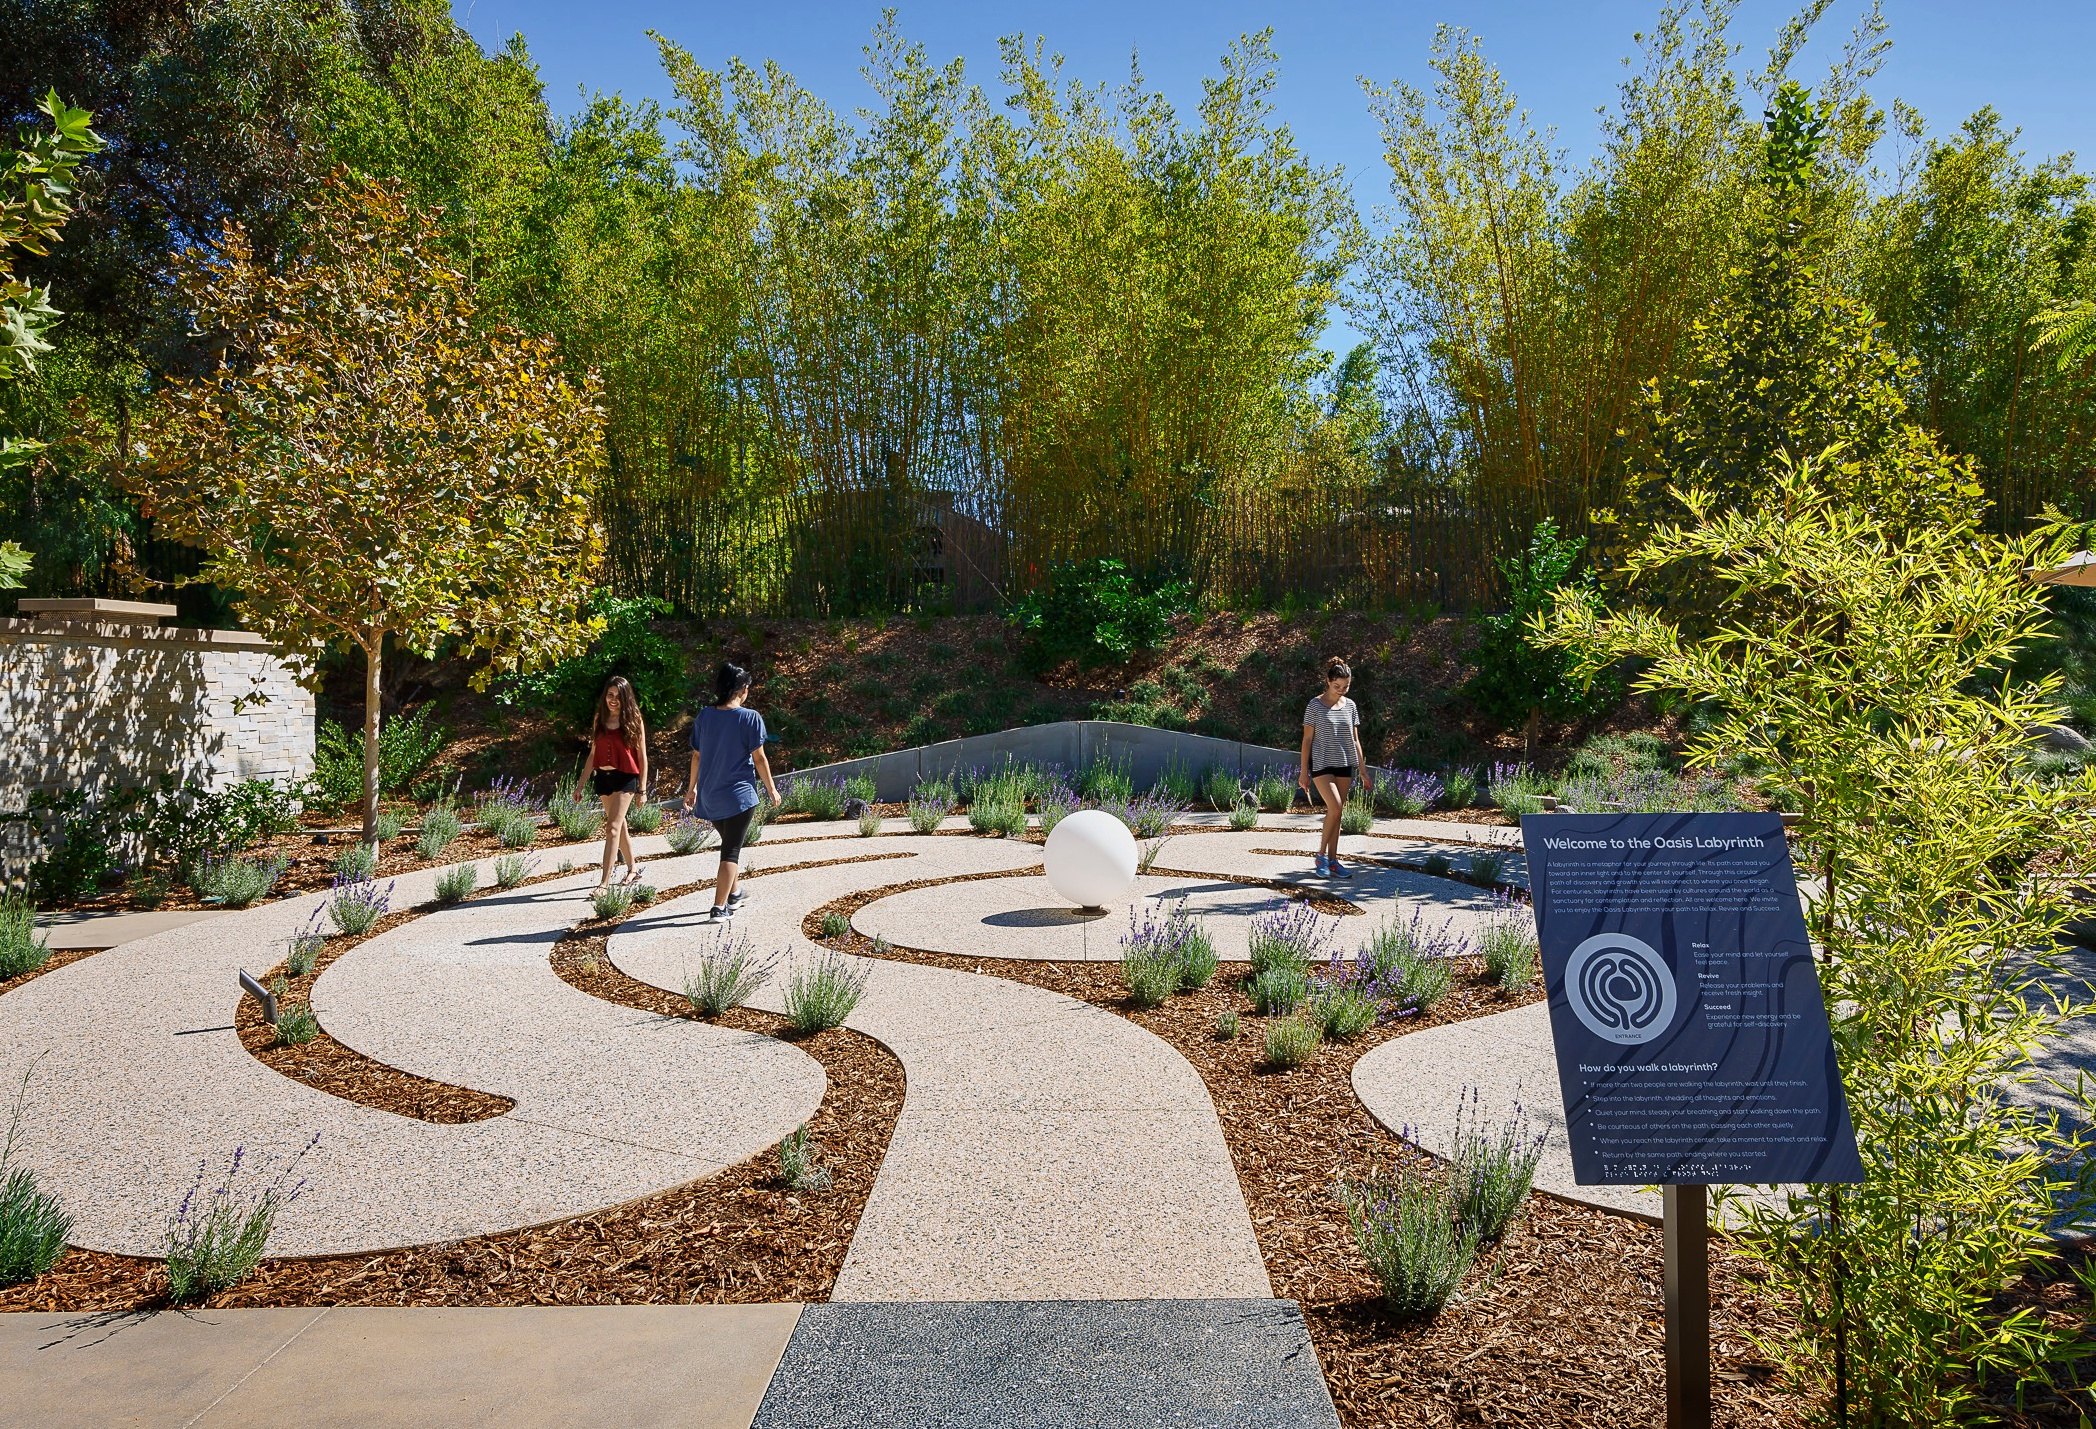 Oasis-Wellness-Center-Labyrinth-.jpg